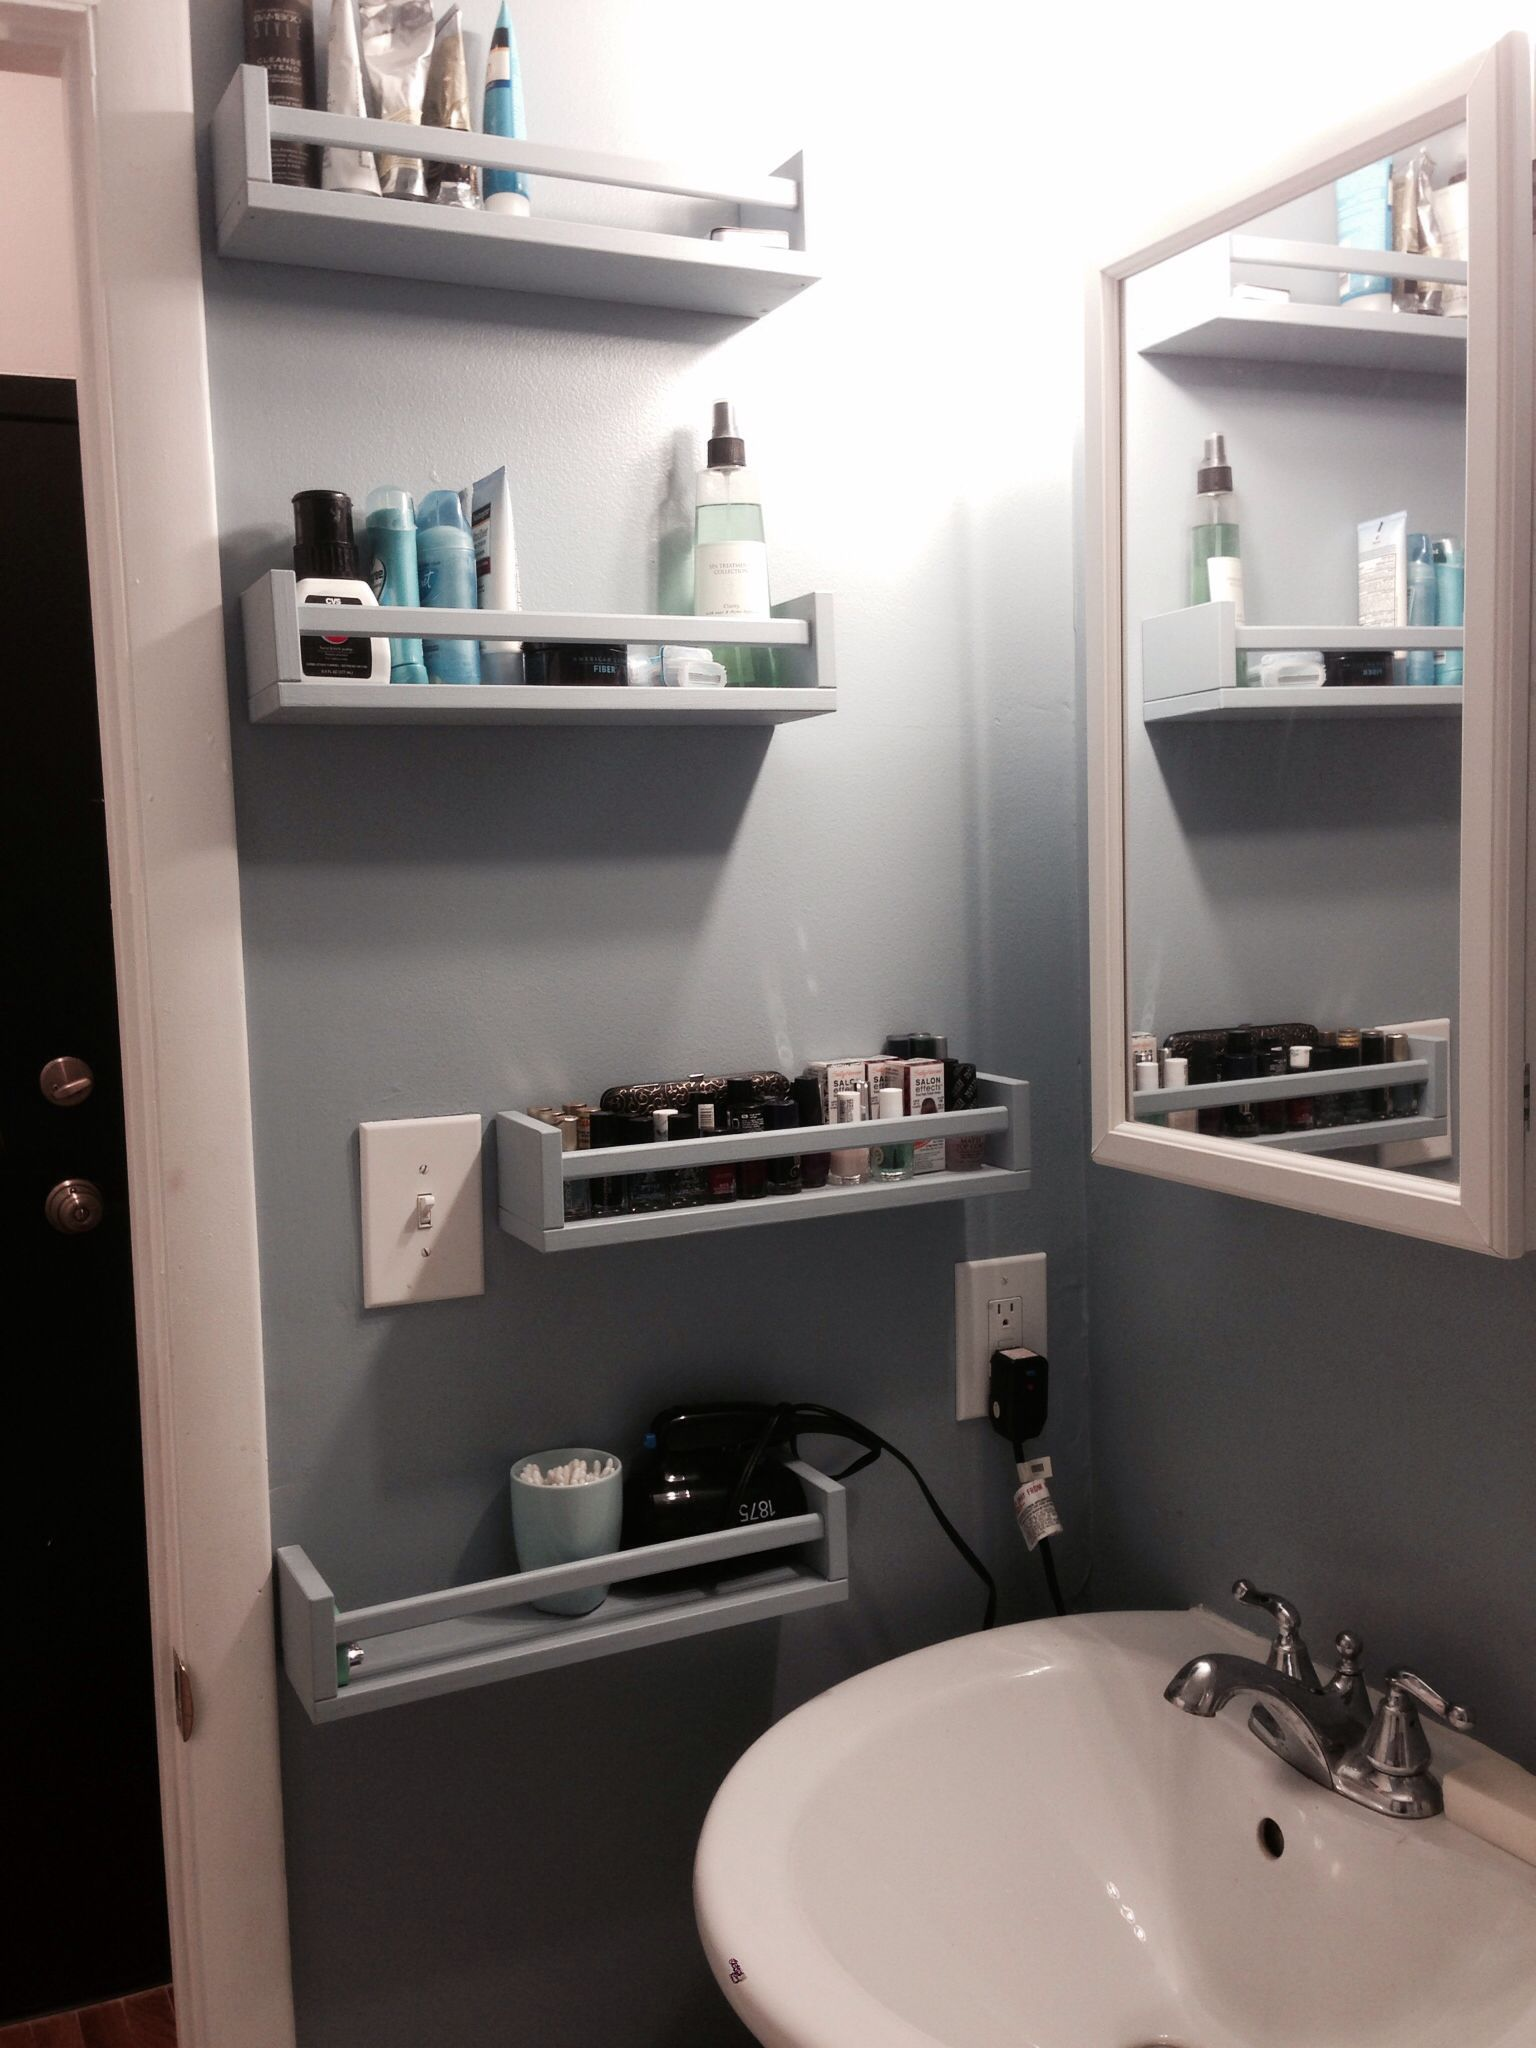 ikea bekvam spice racks as bathroom storage apt